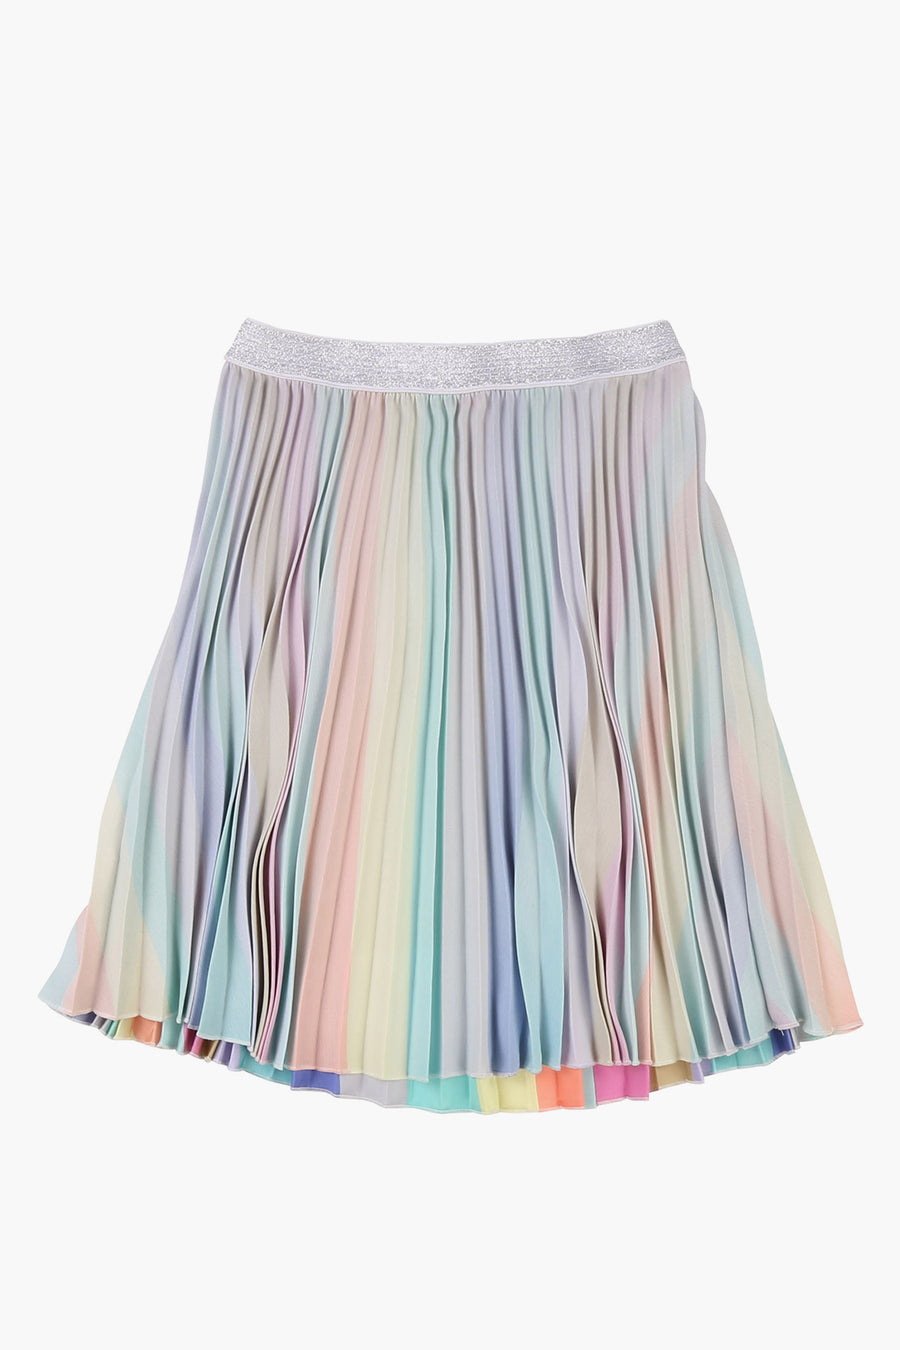 Billieblush Pleated Sateen Girls Skirt